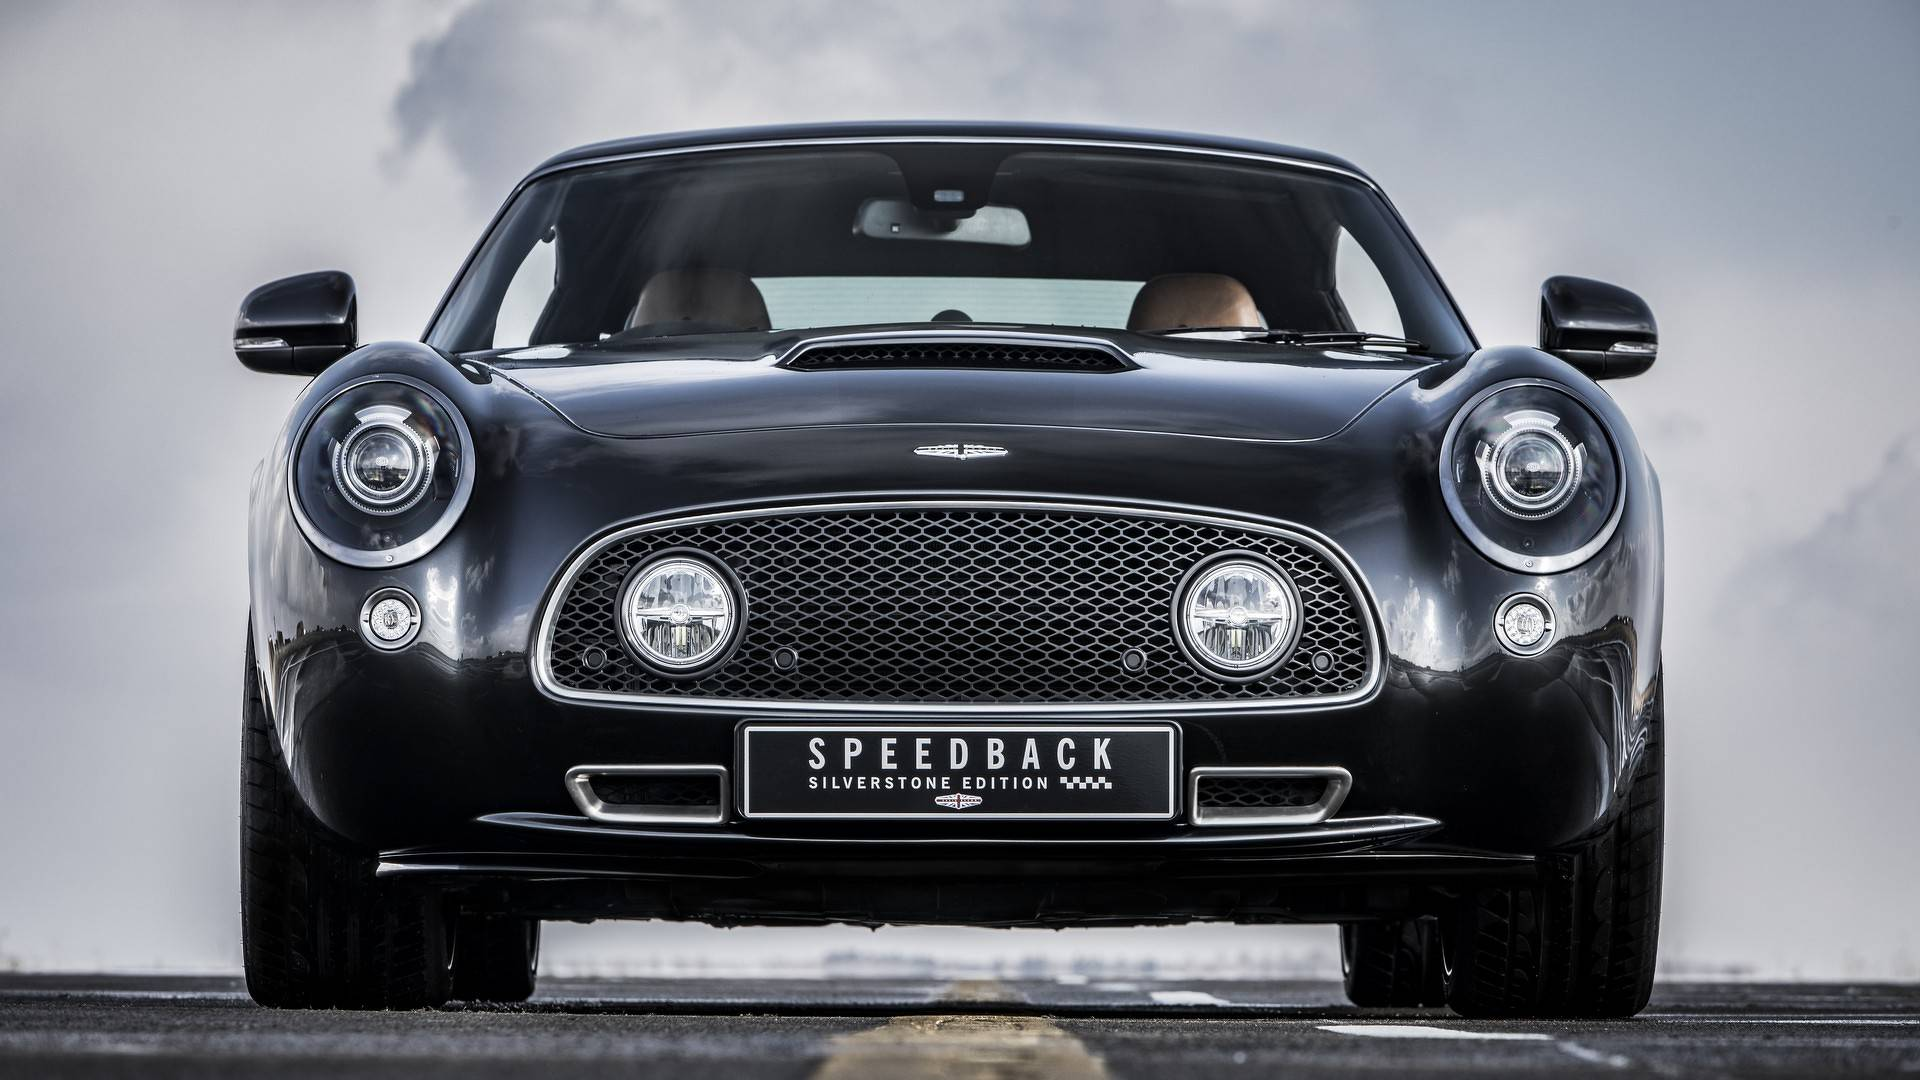 David_Brown_Automotive_Speedback_Silverstone_Edition_08